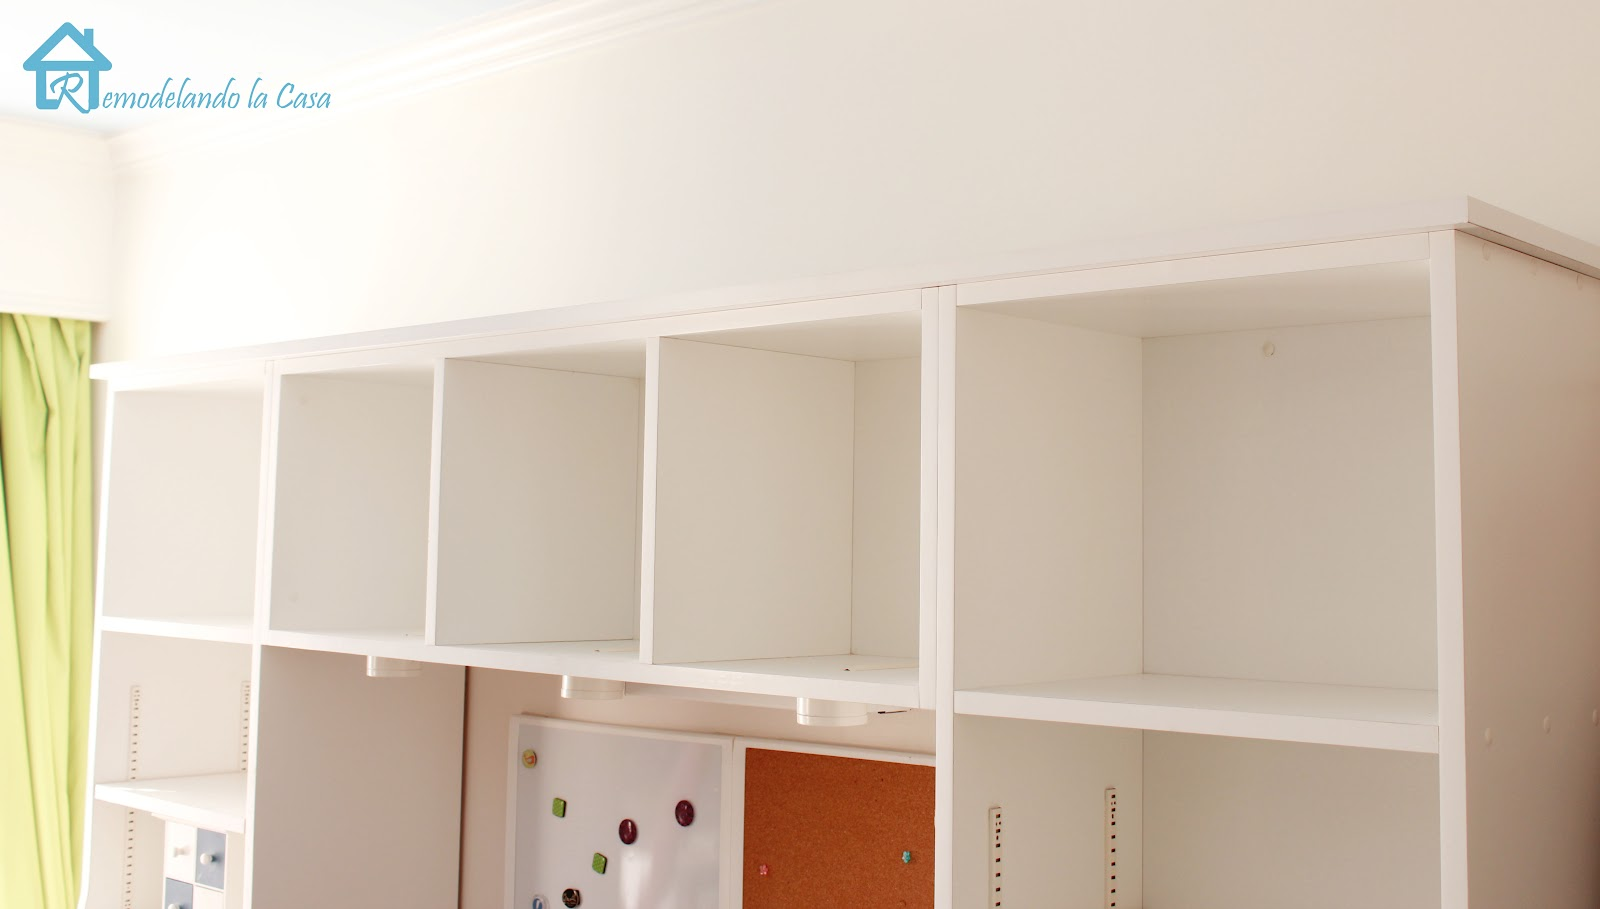 adding crown molding to the top of bookcases - remodelando la casa